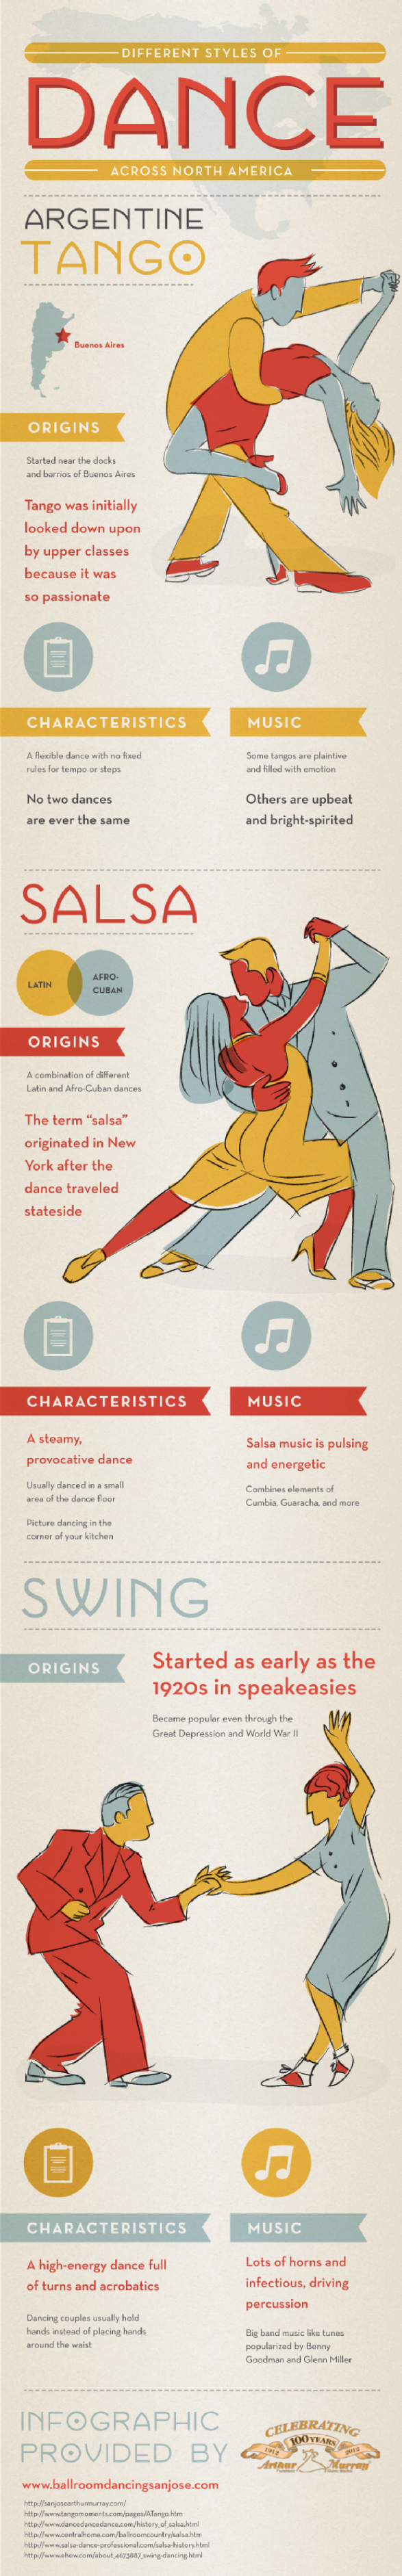 Different Styles of Dance Across North America